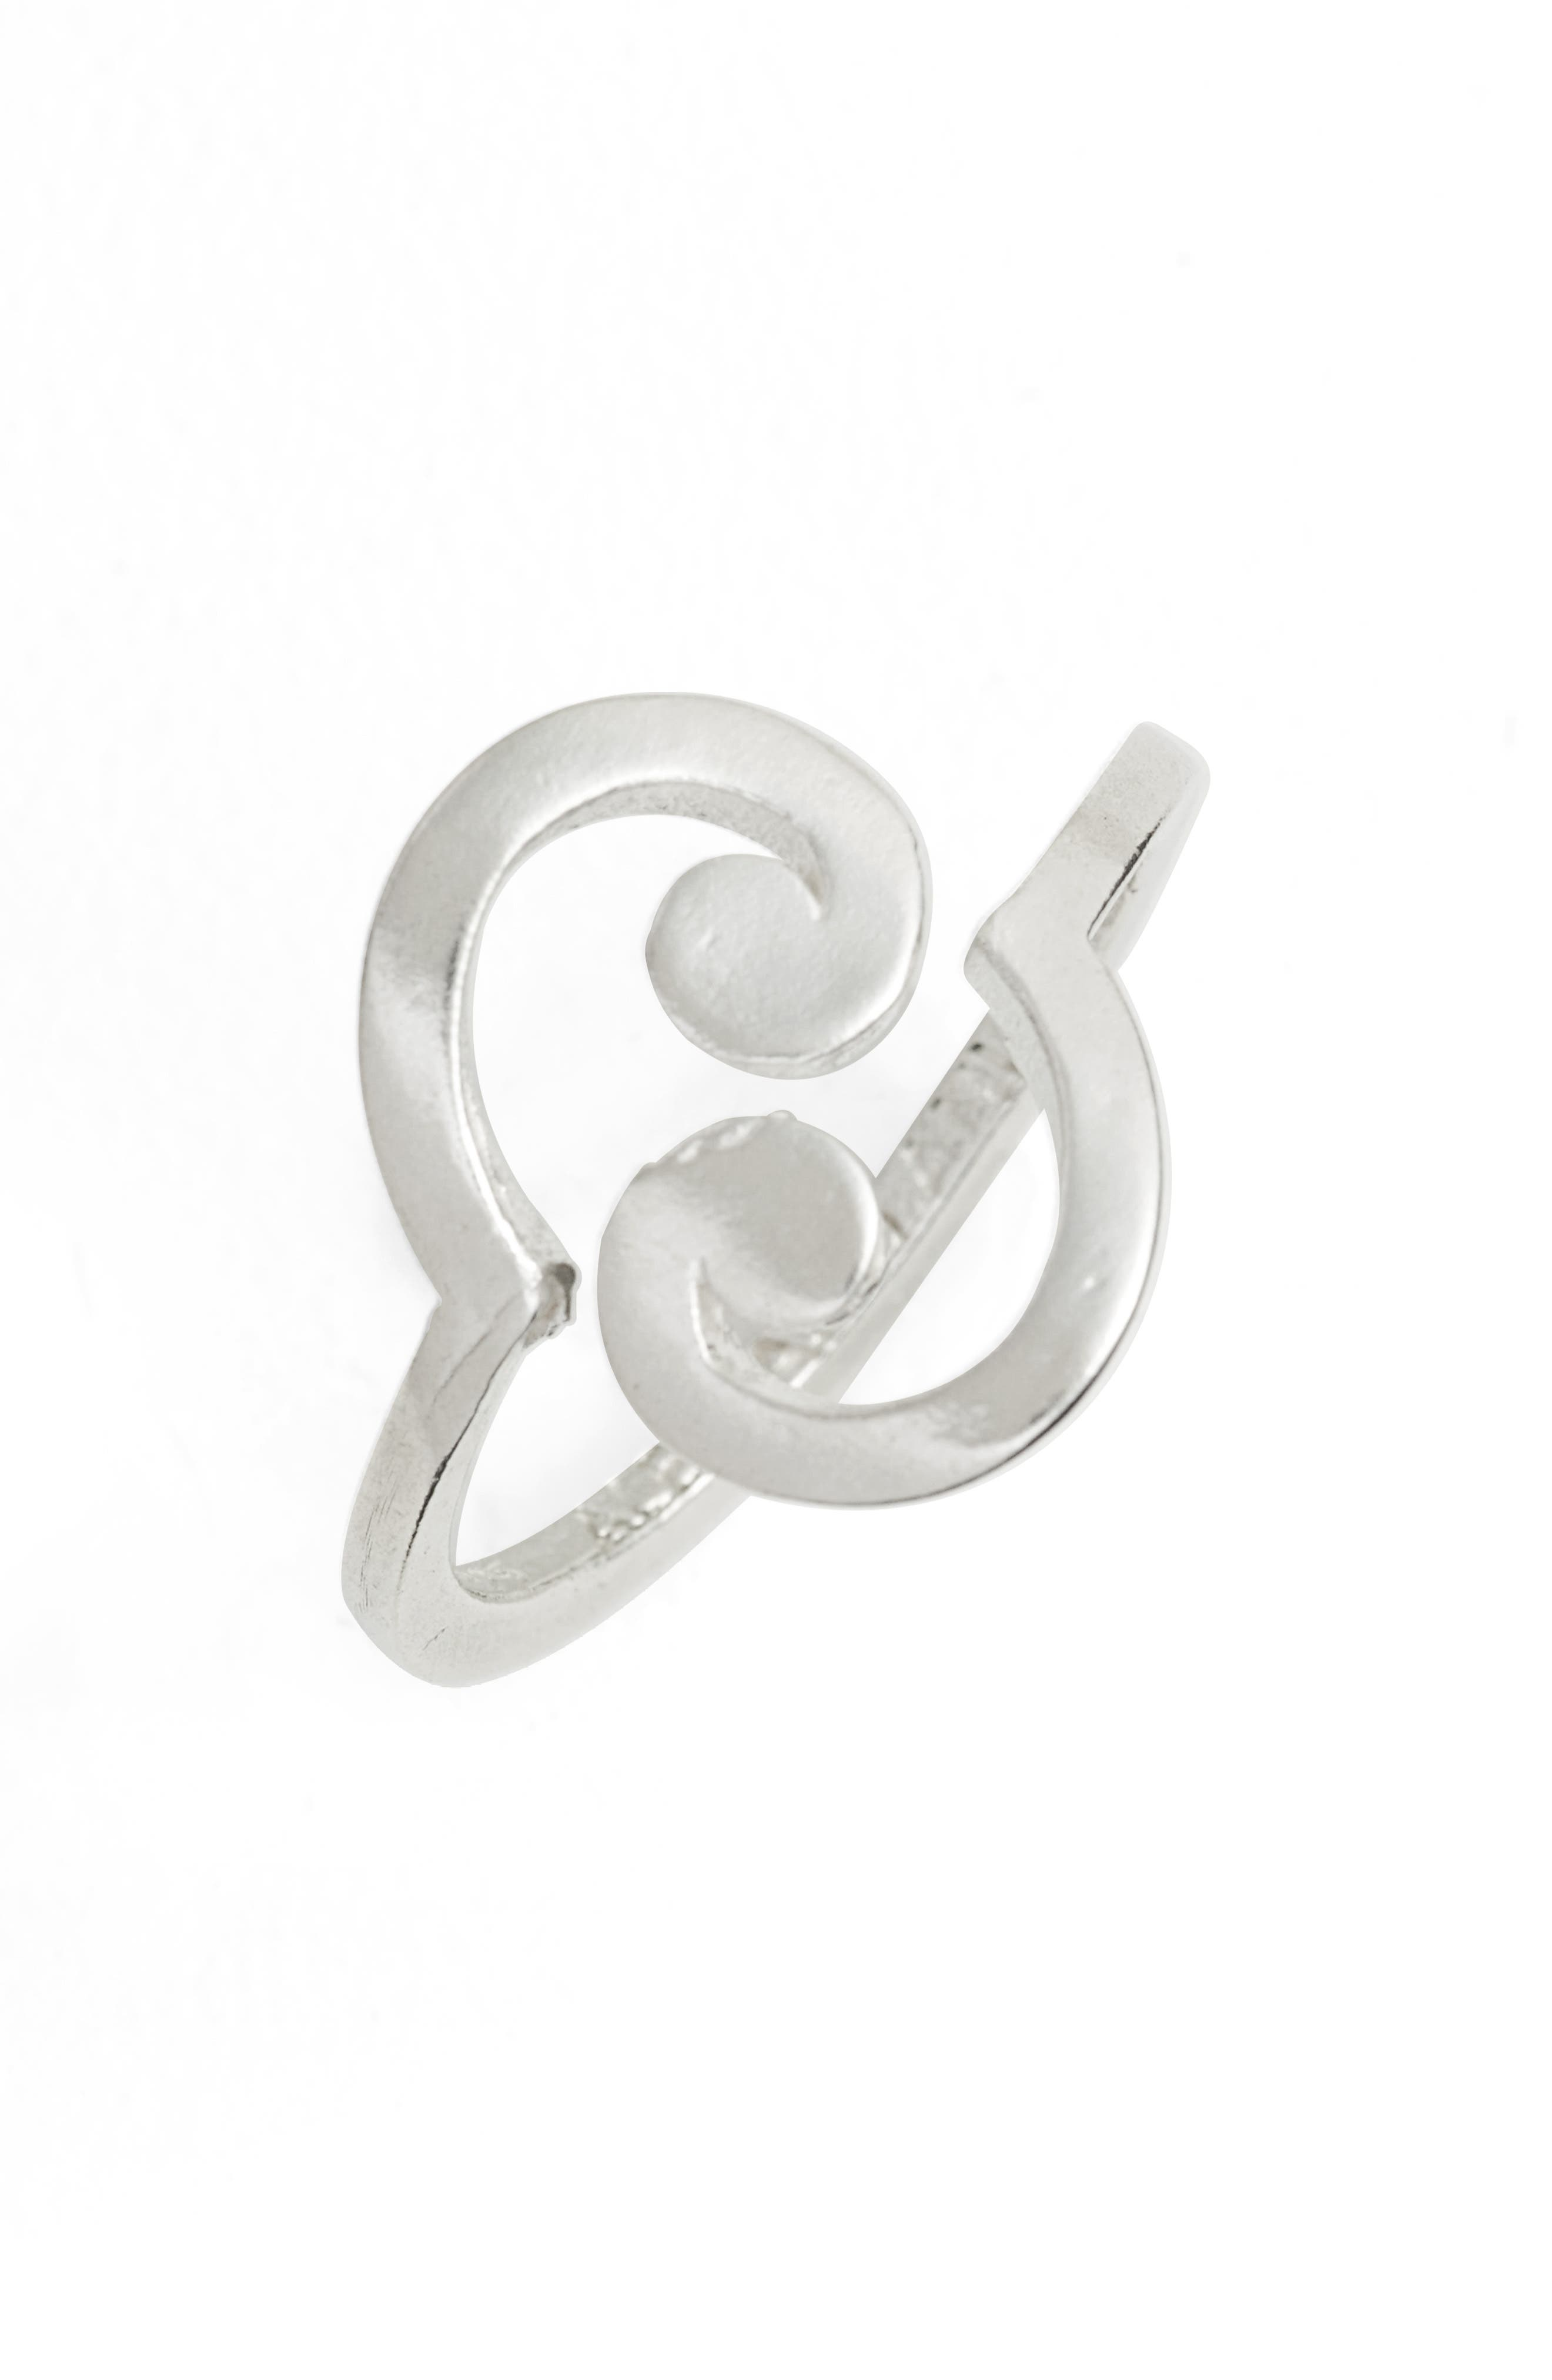 x Disney<sup>®</sup> 'A Wrinkle in Time' Spiral Wrap Ring,                             Main thumbnail 1, color,